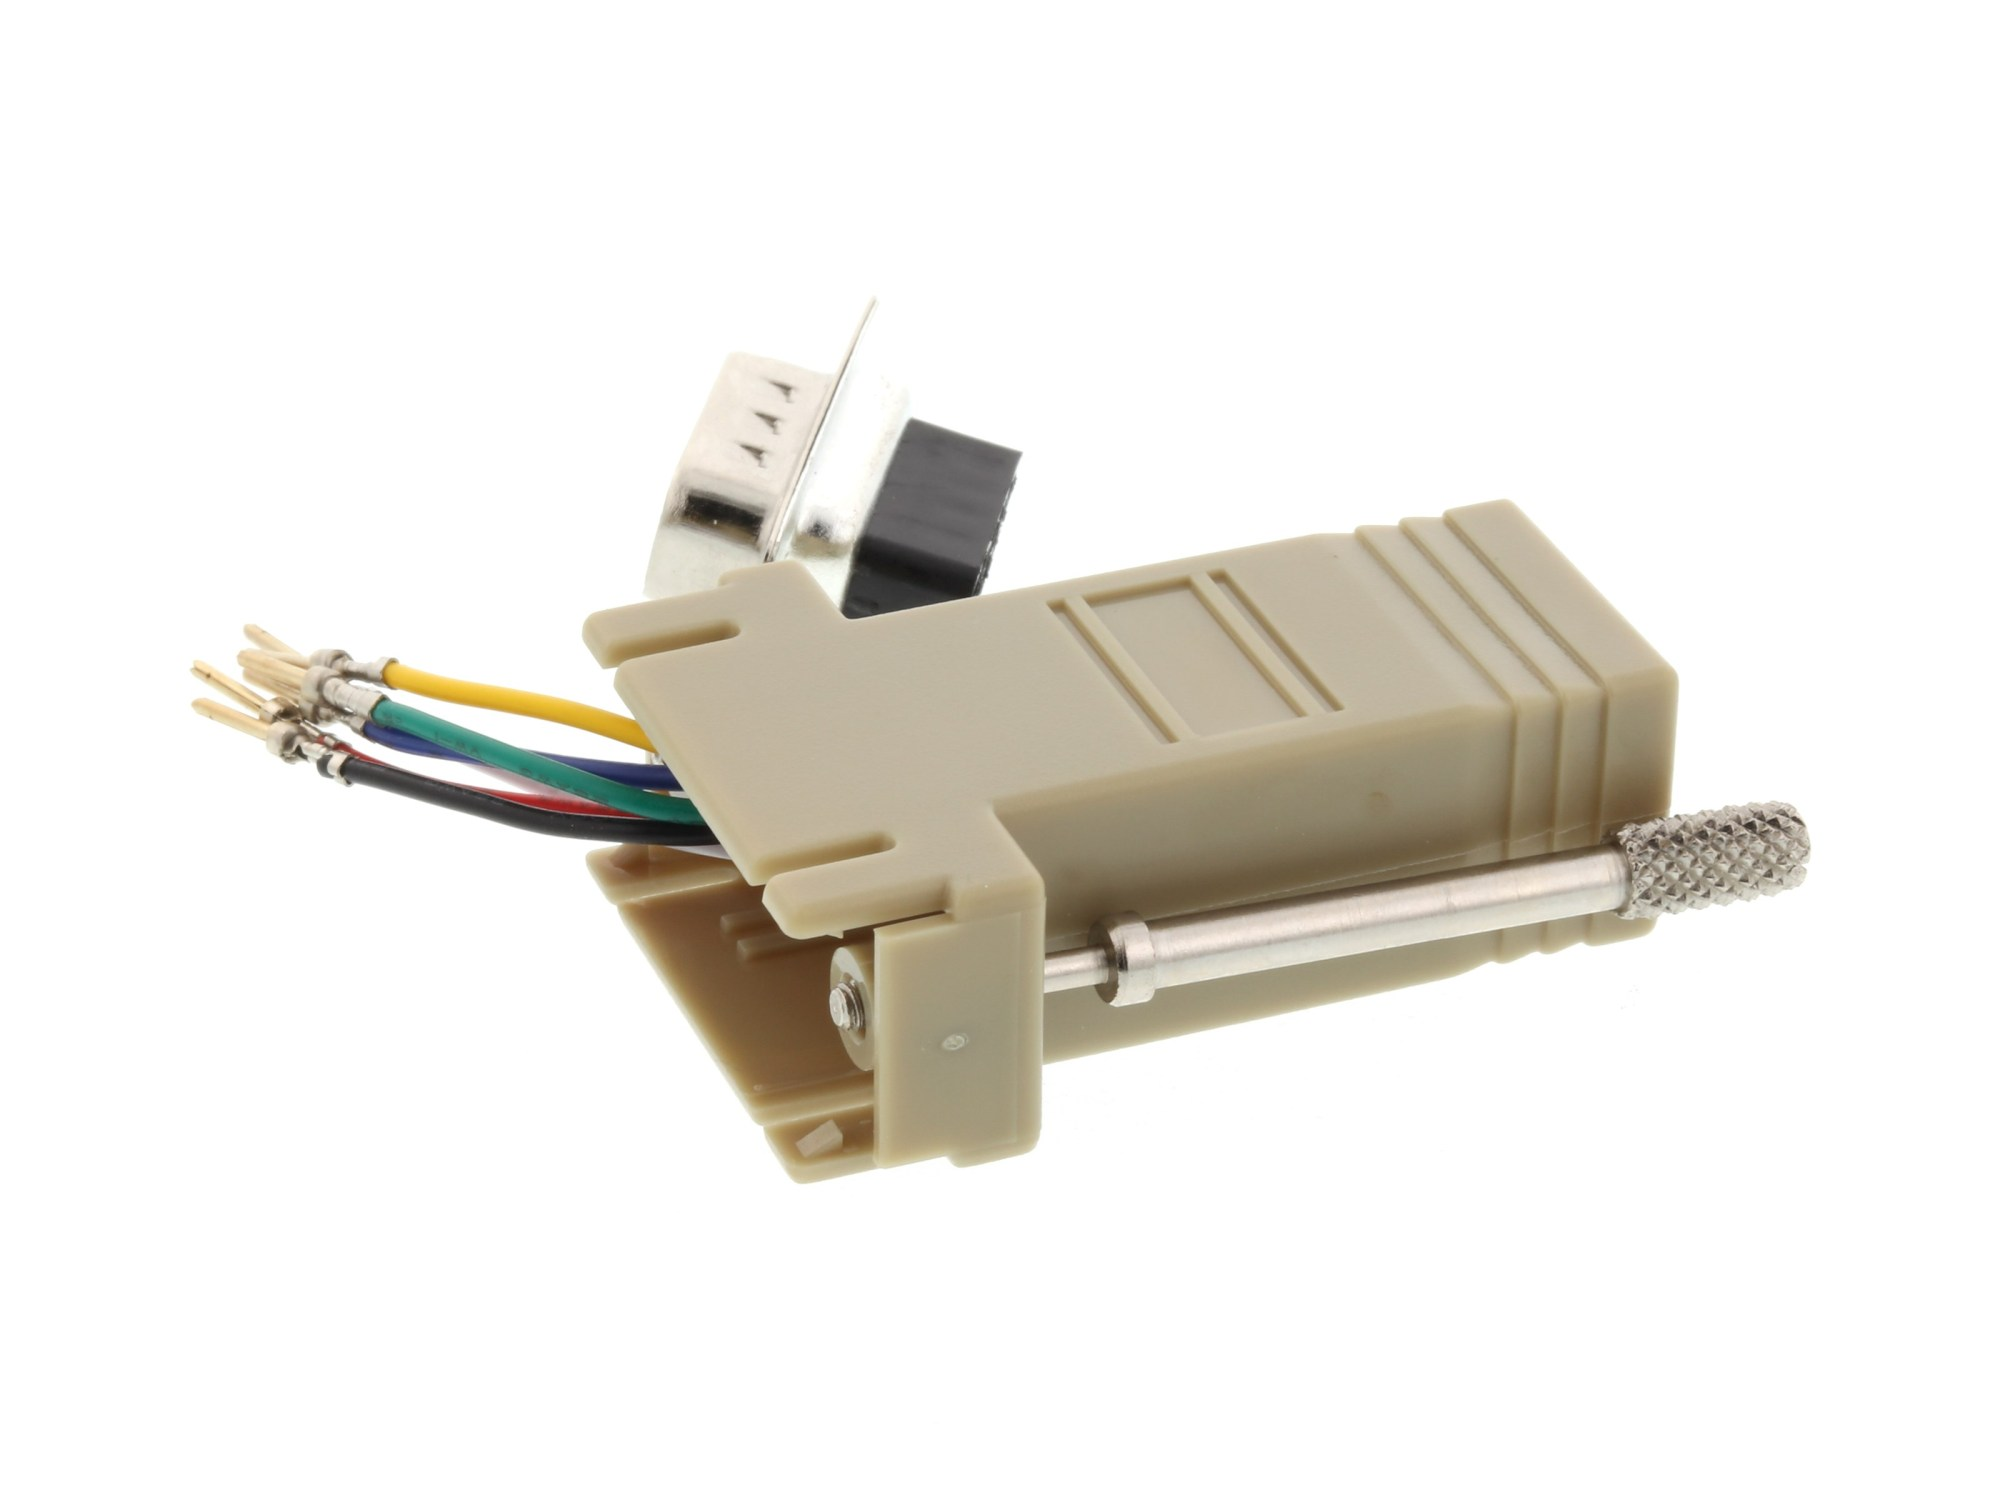 hight resolution of  picture of modular adapter kit db9 male to rj11 rj12 beige